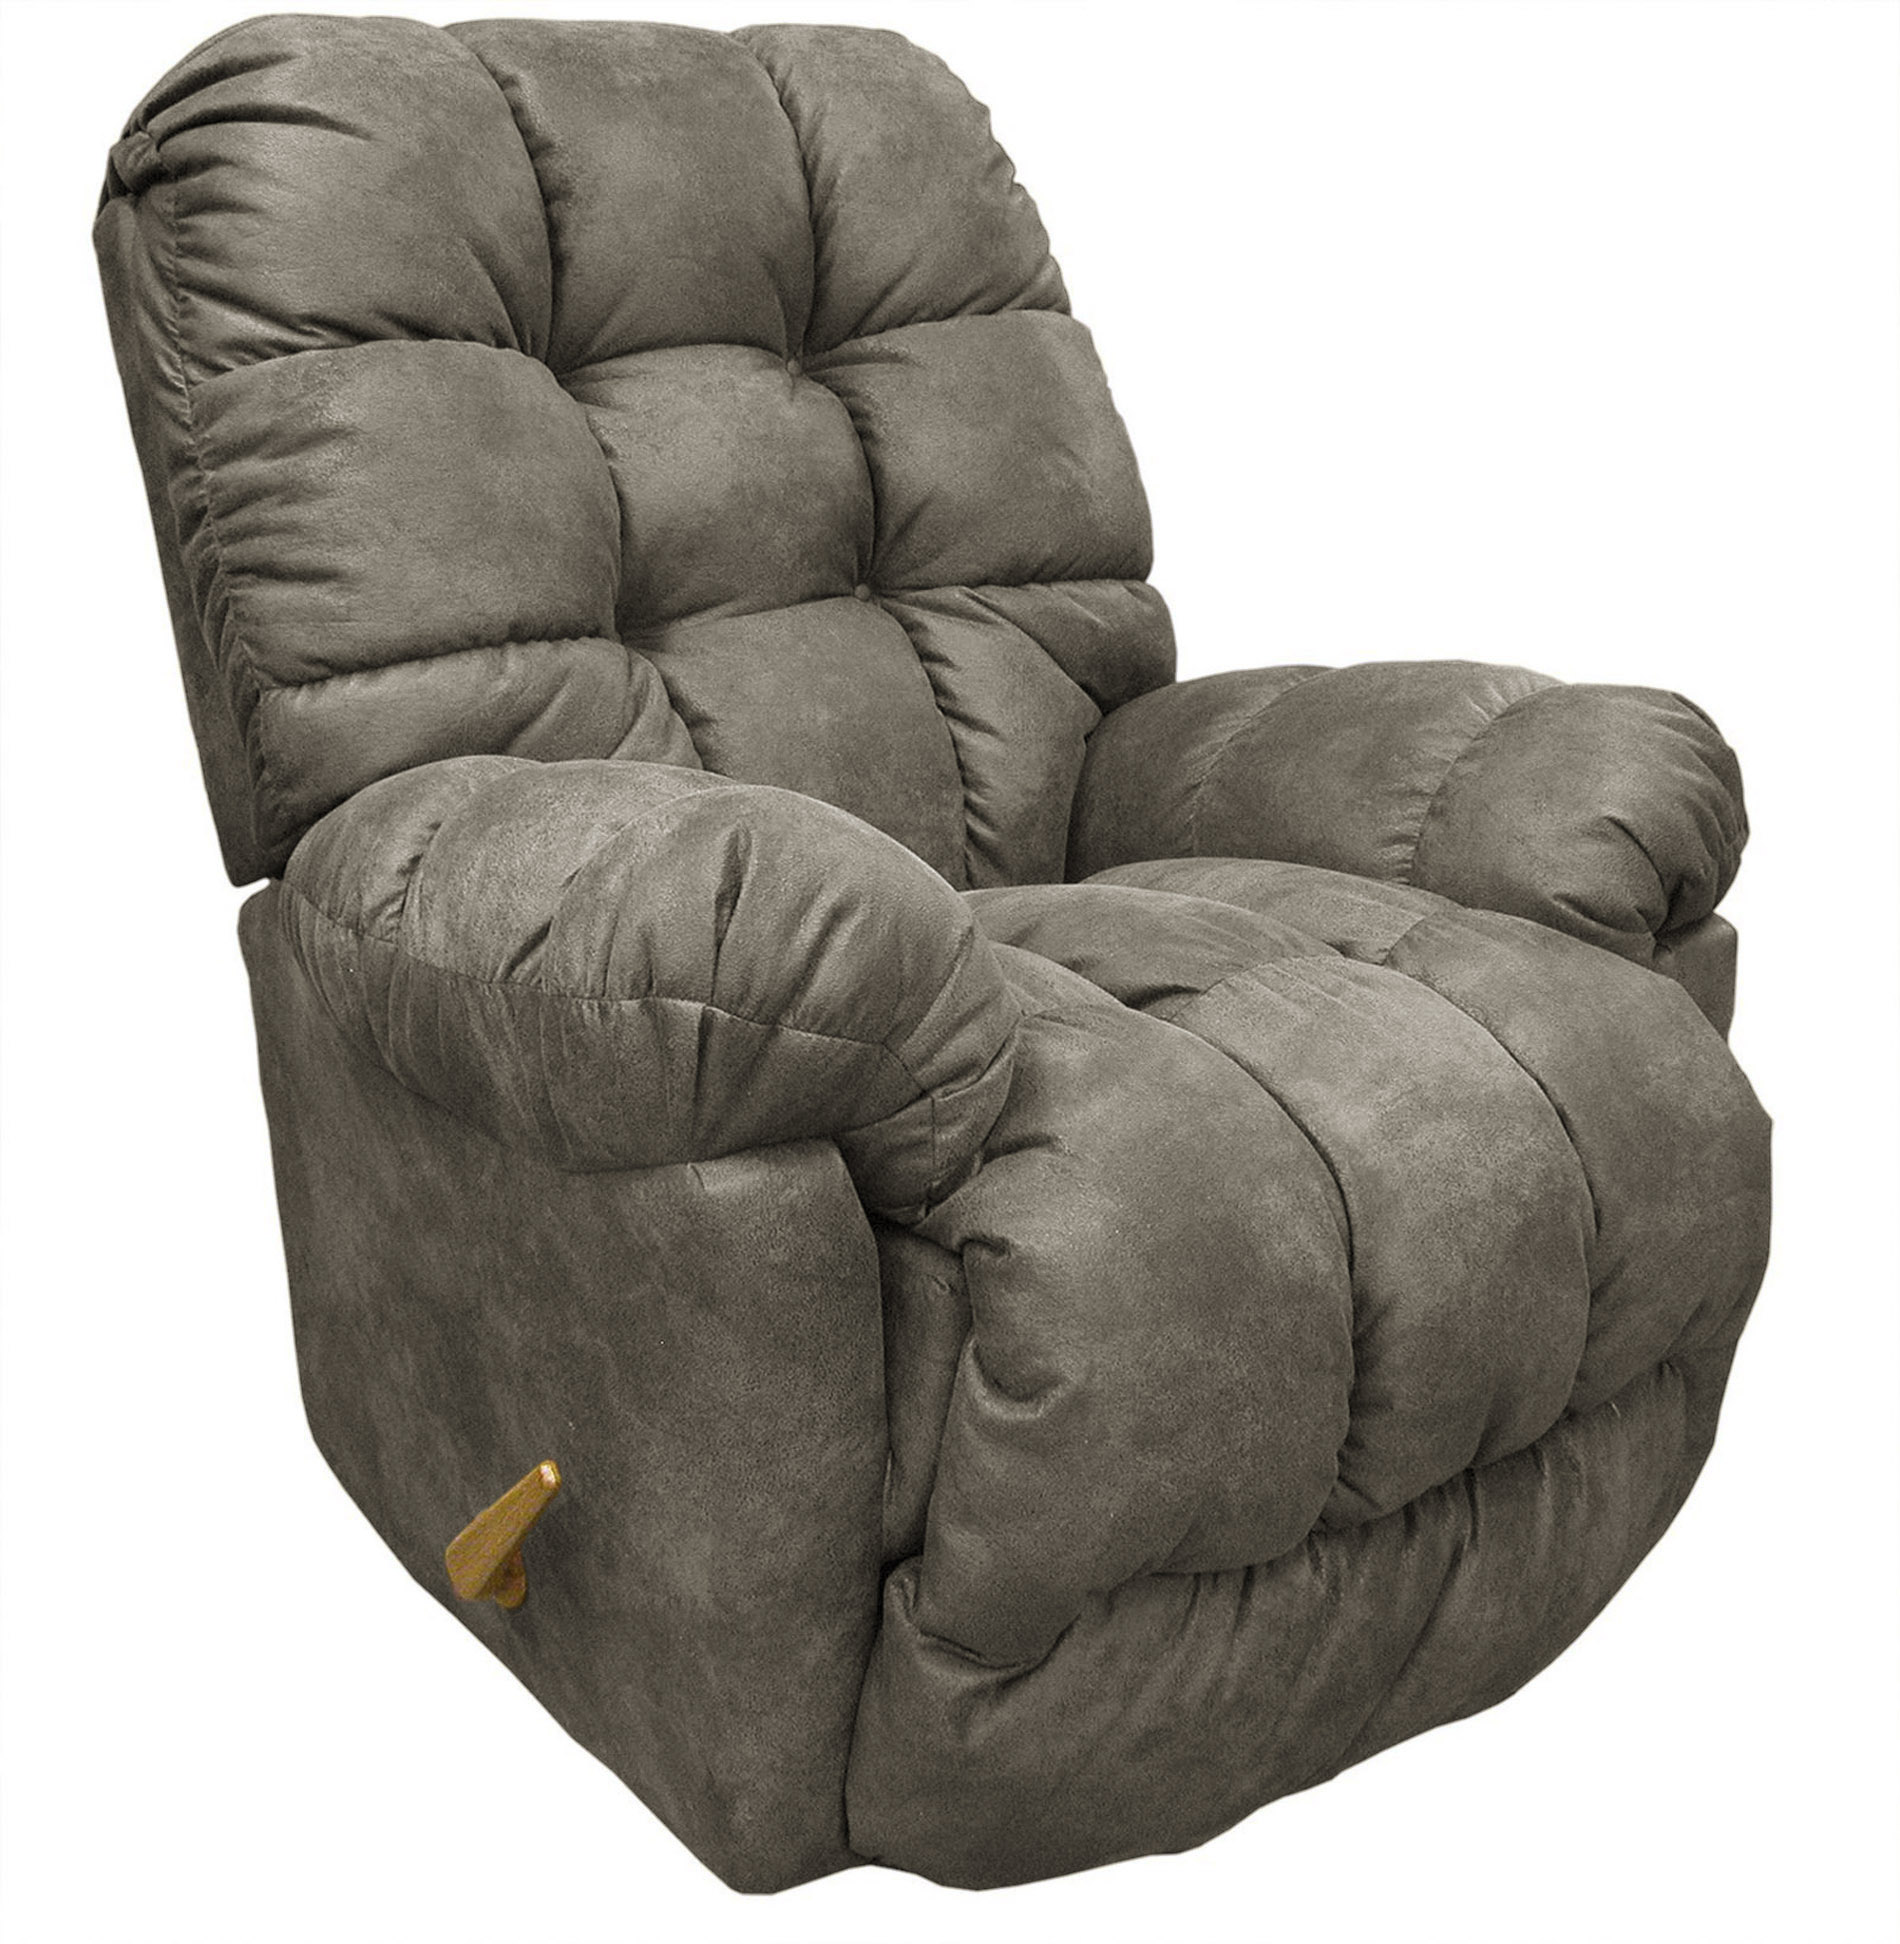 sears recliner chairs flower chair sash best home furnishings 9mw81 1bl 27075bl revere power